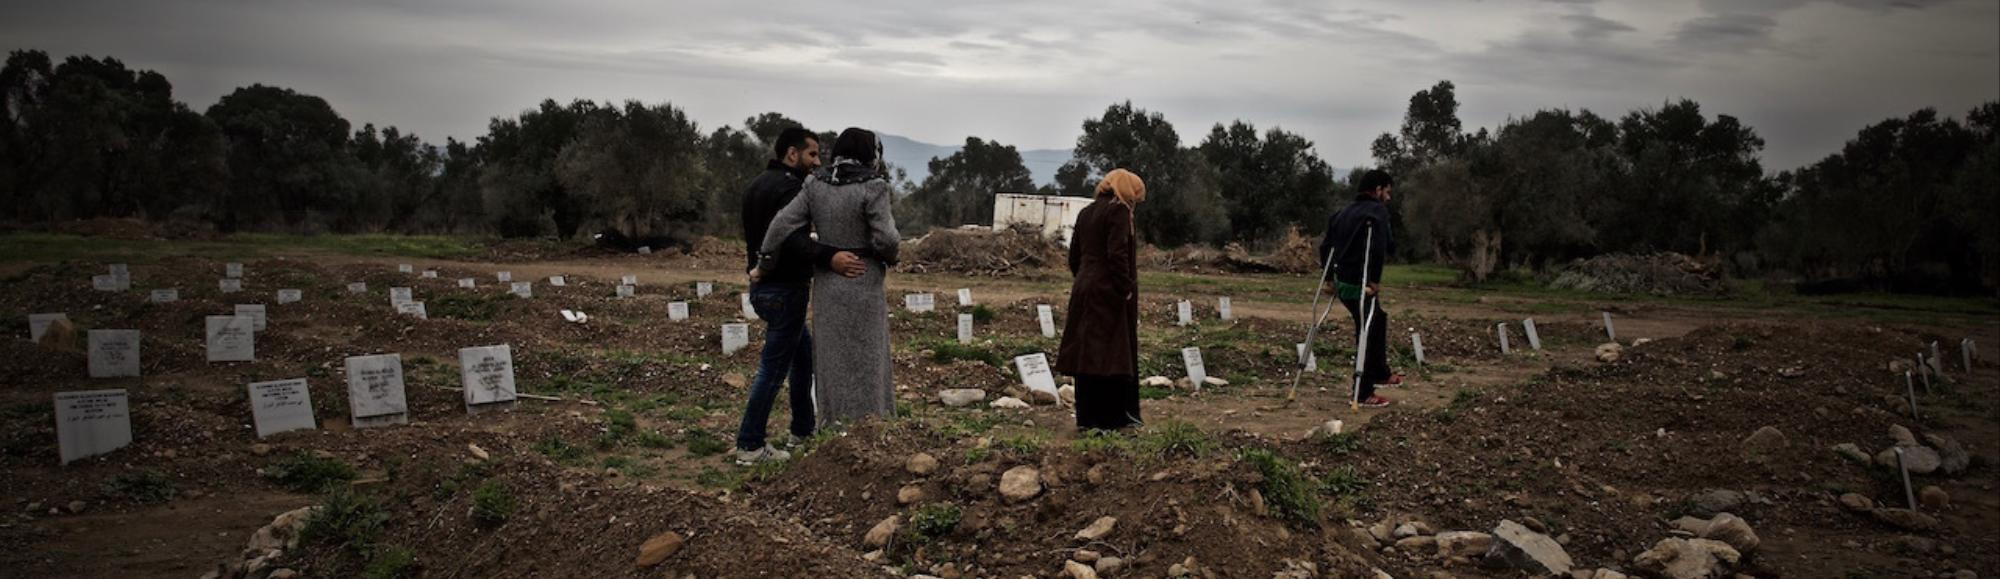 This Man Is Burying the Refugees Who Die Before They Make It to Lesbos